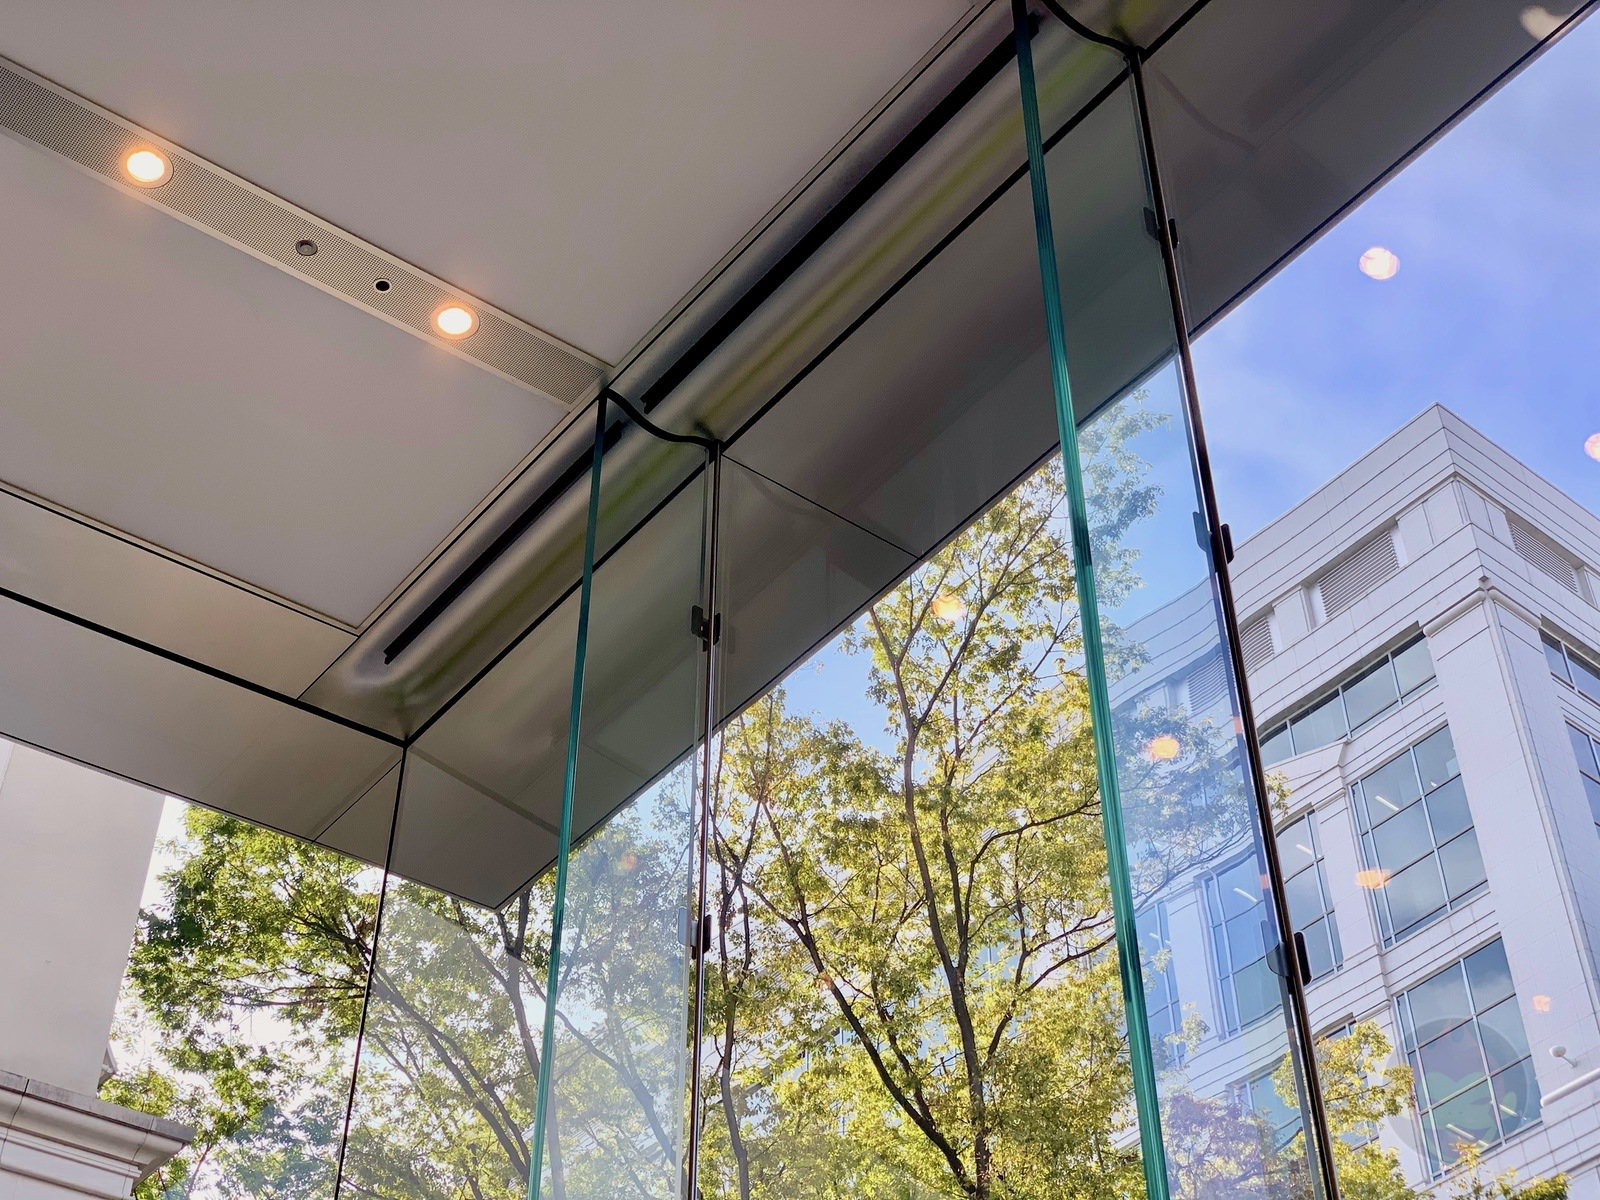 Apple-Omotesando-Video-Wall-Renewall-19.jpg